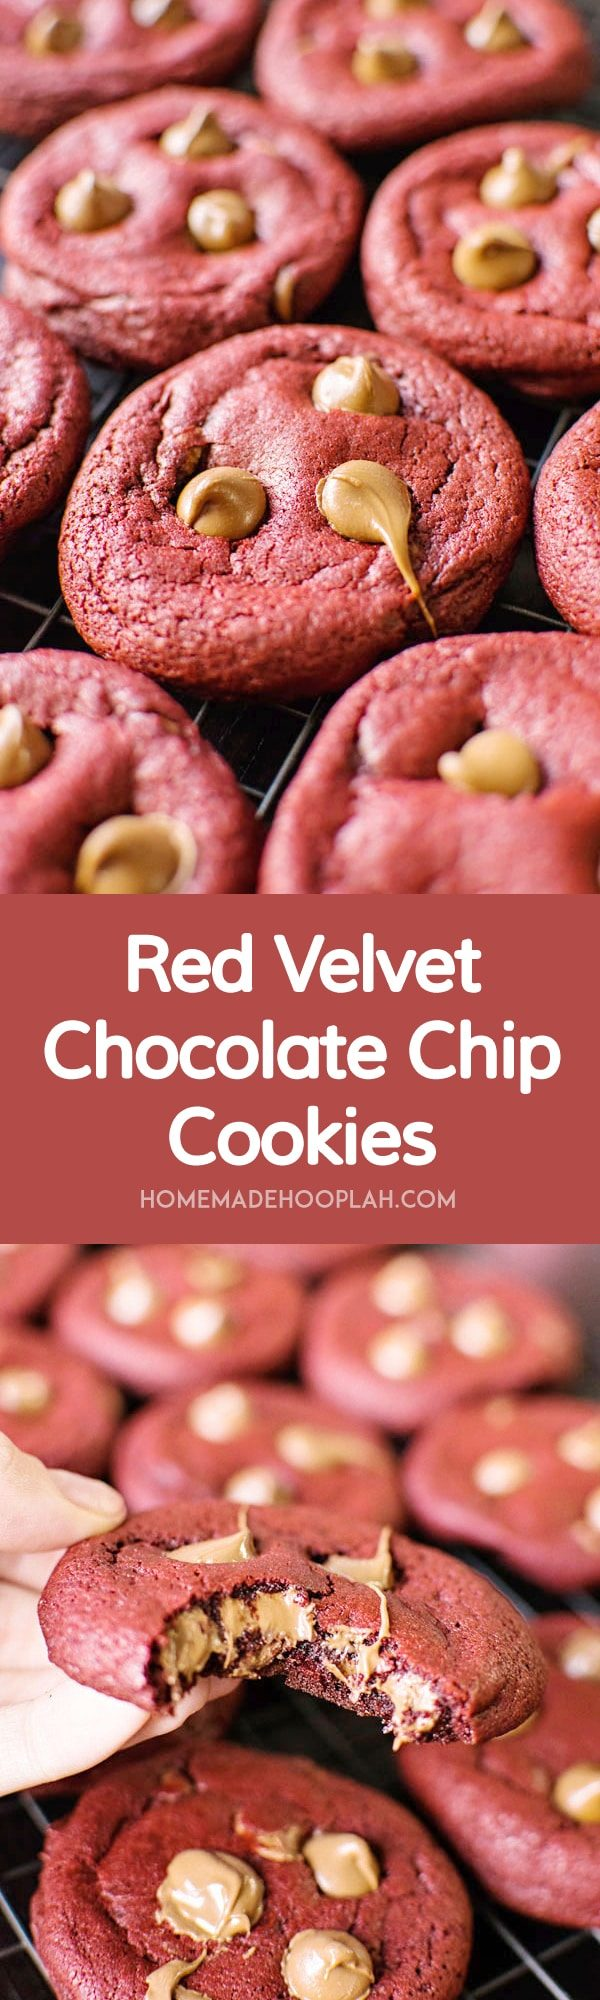 Red Velvet Chocolate Chip Cookies! Deep red velvet cookies that are soft and chewy and laced with milk chocolate chips. | HomemadeHooplah.com